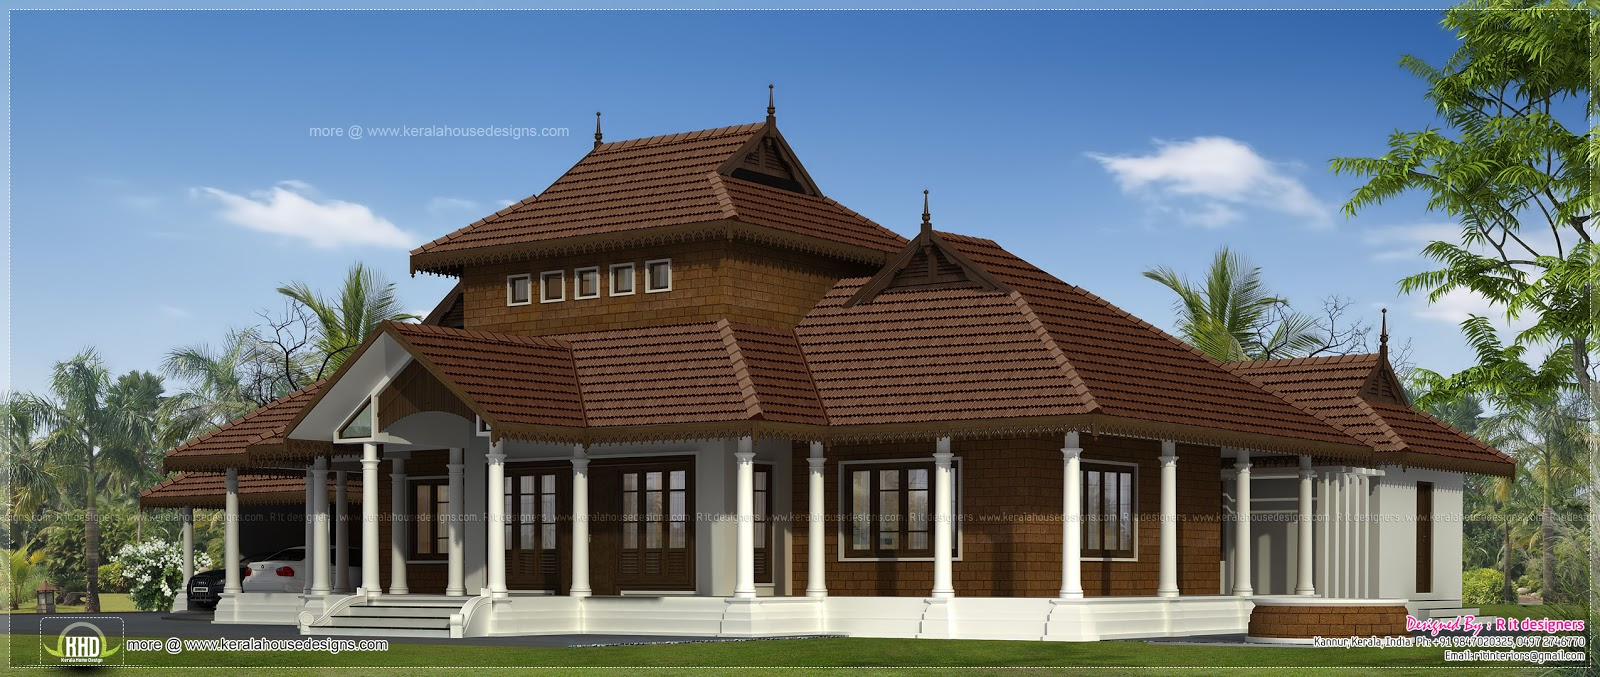 Kerala Traditional Villa Left Side View Kerala Traditional Villa Right Side  View